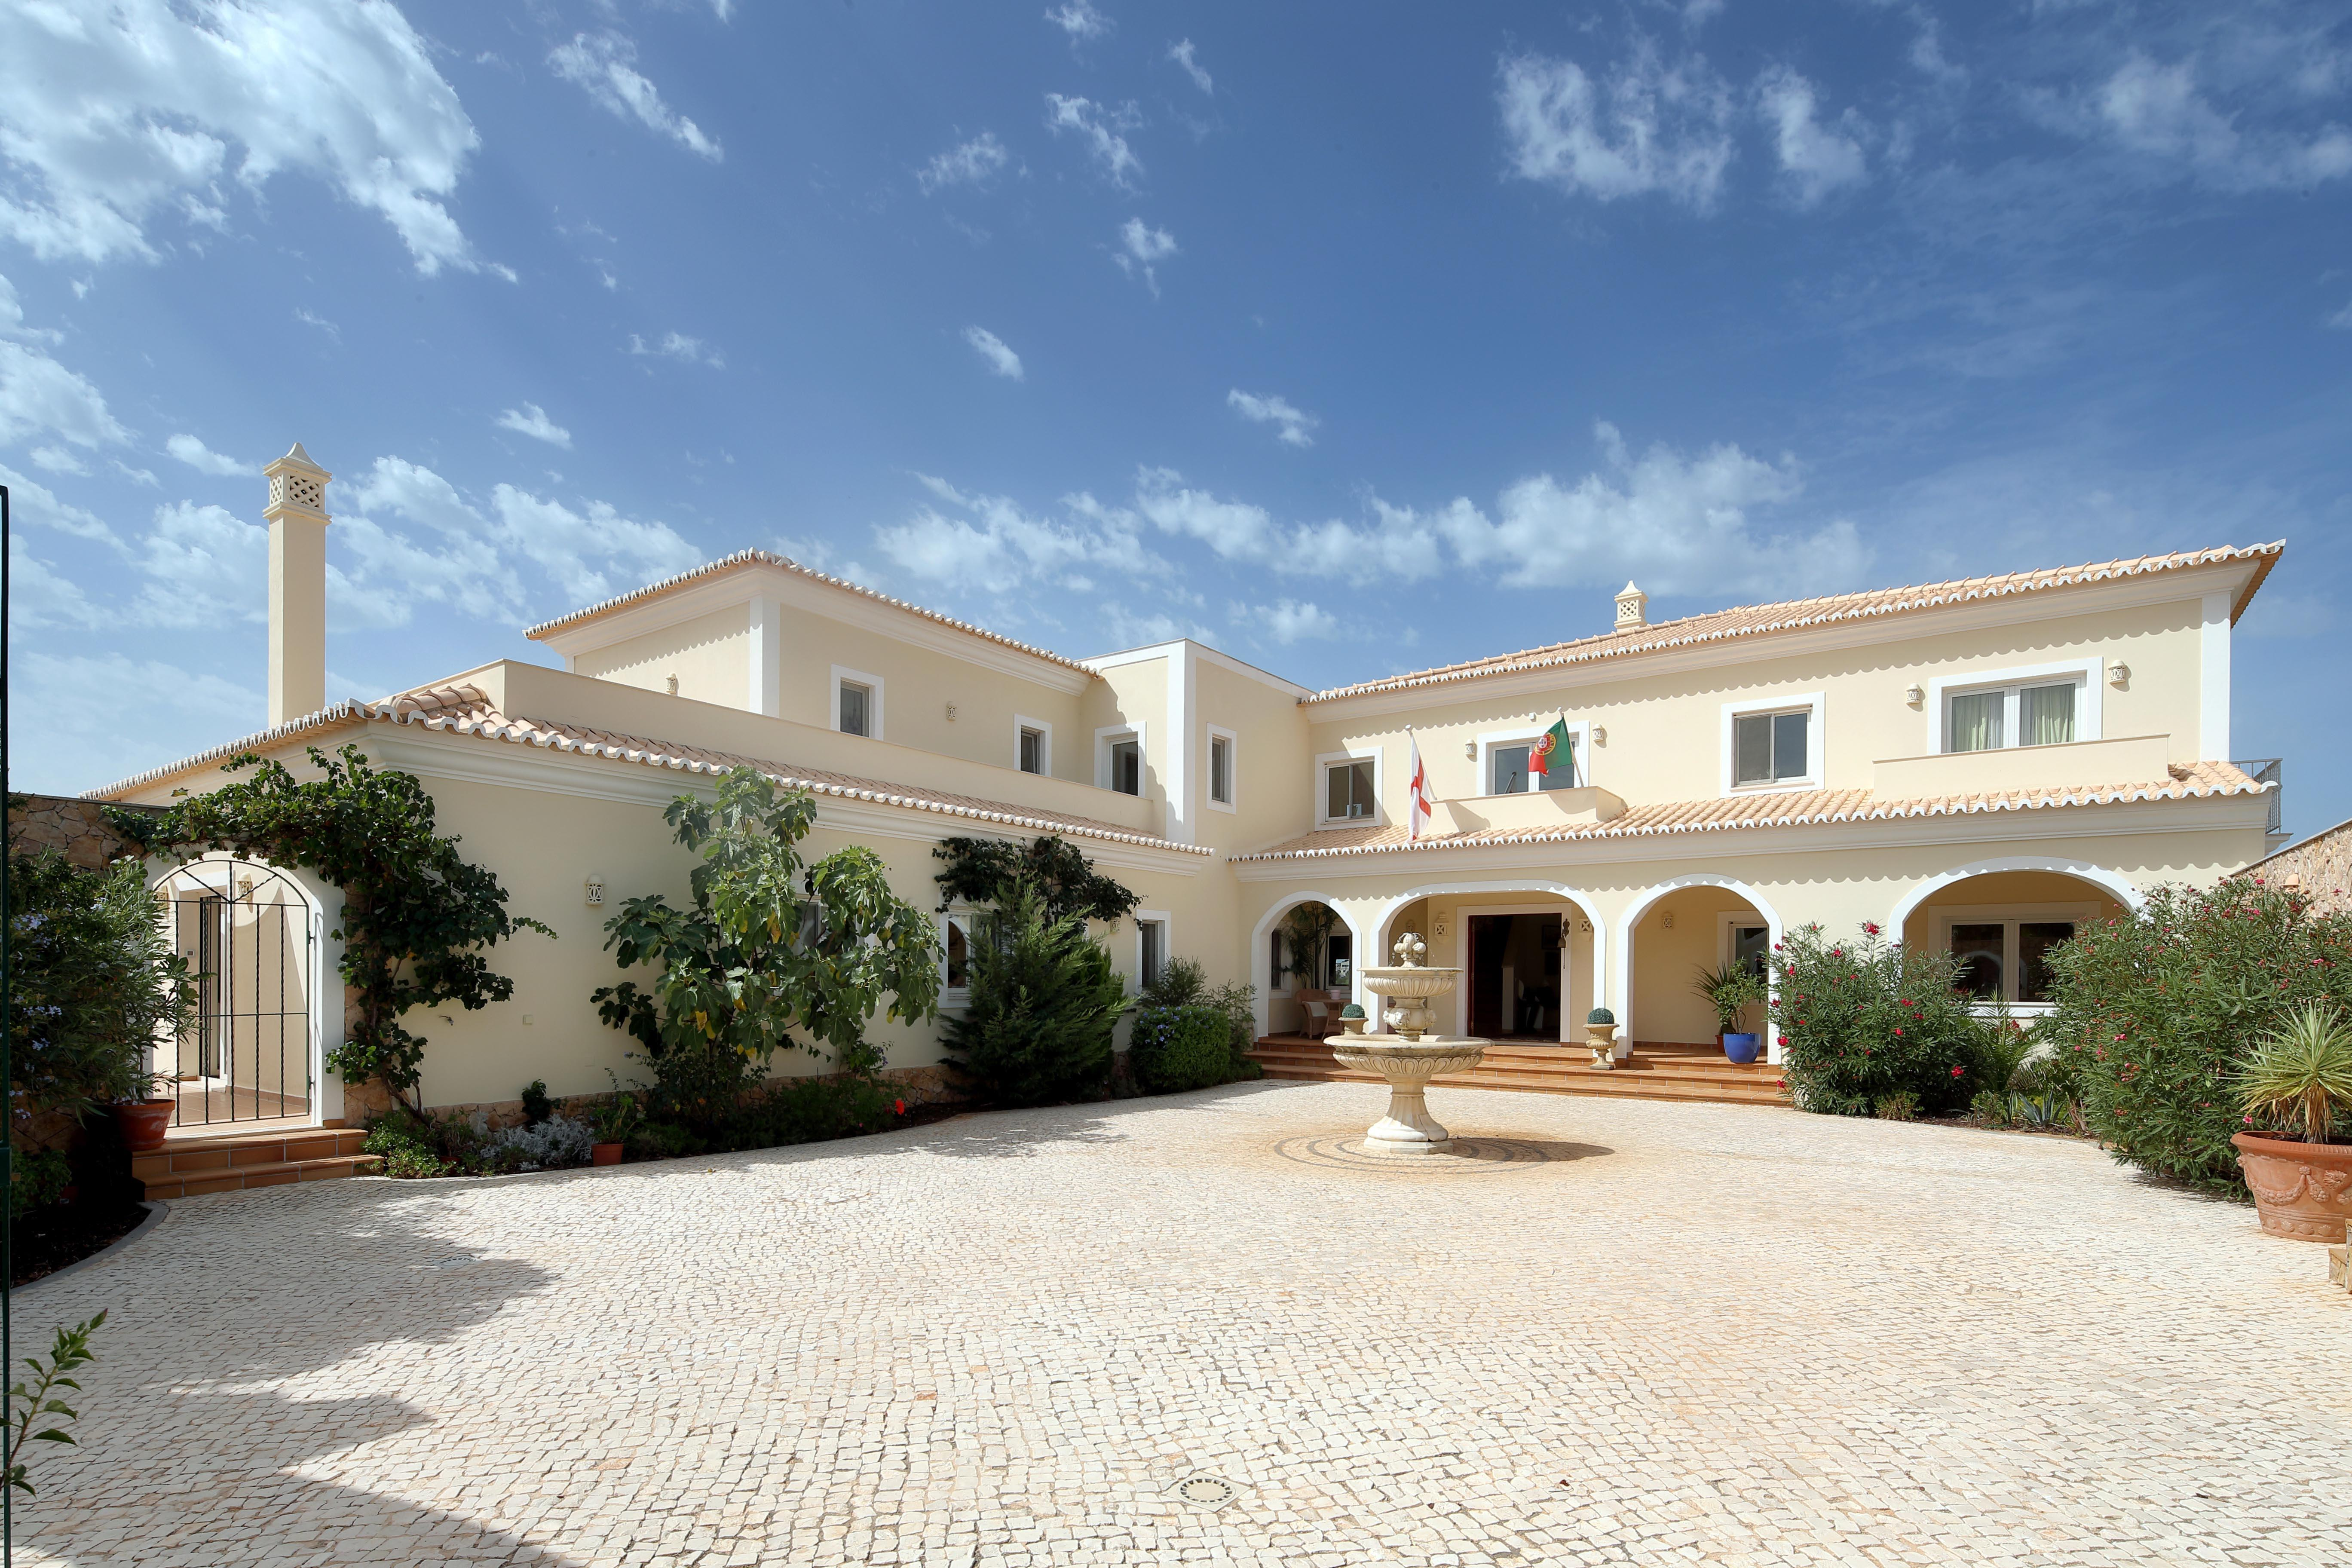 Single Family Home for Sale at Detached house, 7 bedrooms, for Sale Other Portugal, Other Areas In Portugal, 8400-484 Portugal